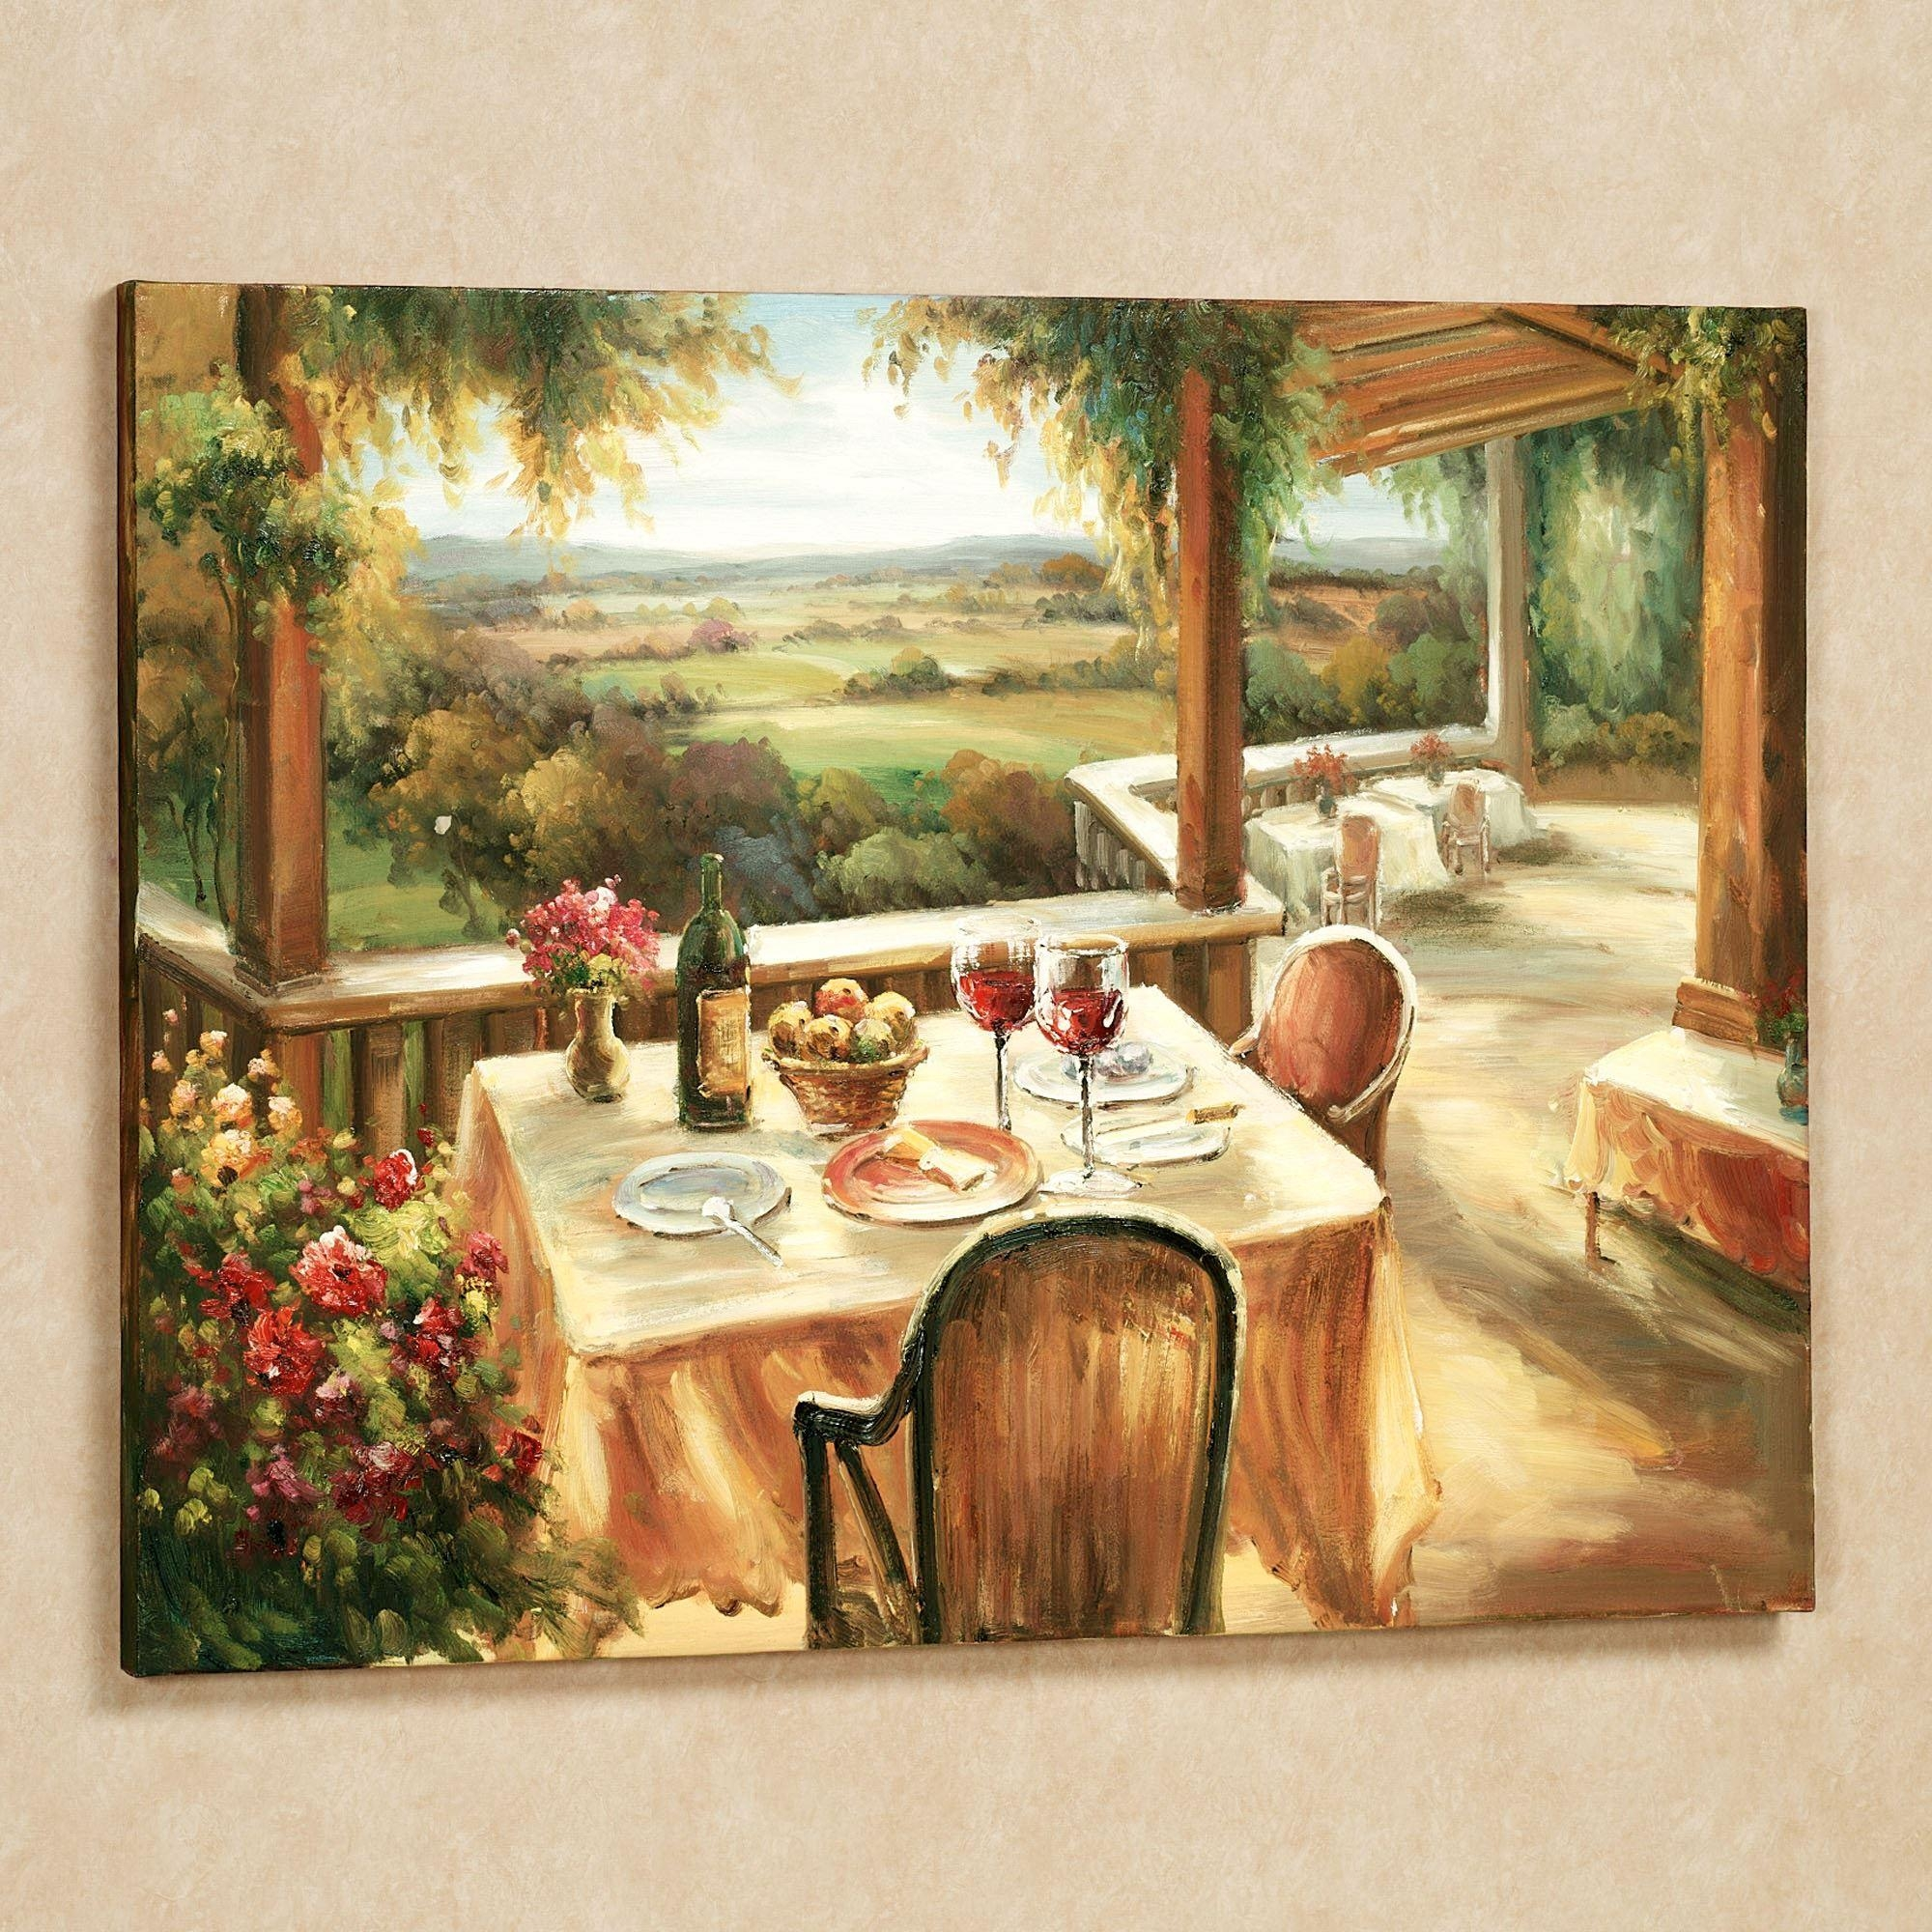 Home Decor Wall Art Tags : Awesome Kitchen Artwork Design Wrought Regarding Italian Wall Art For Sale (View 4 of 20)